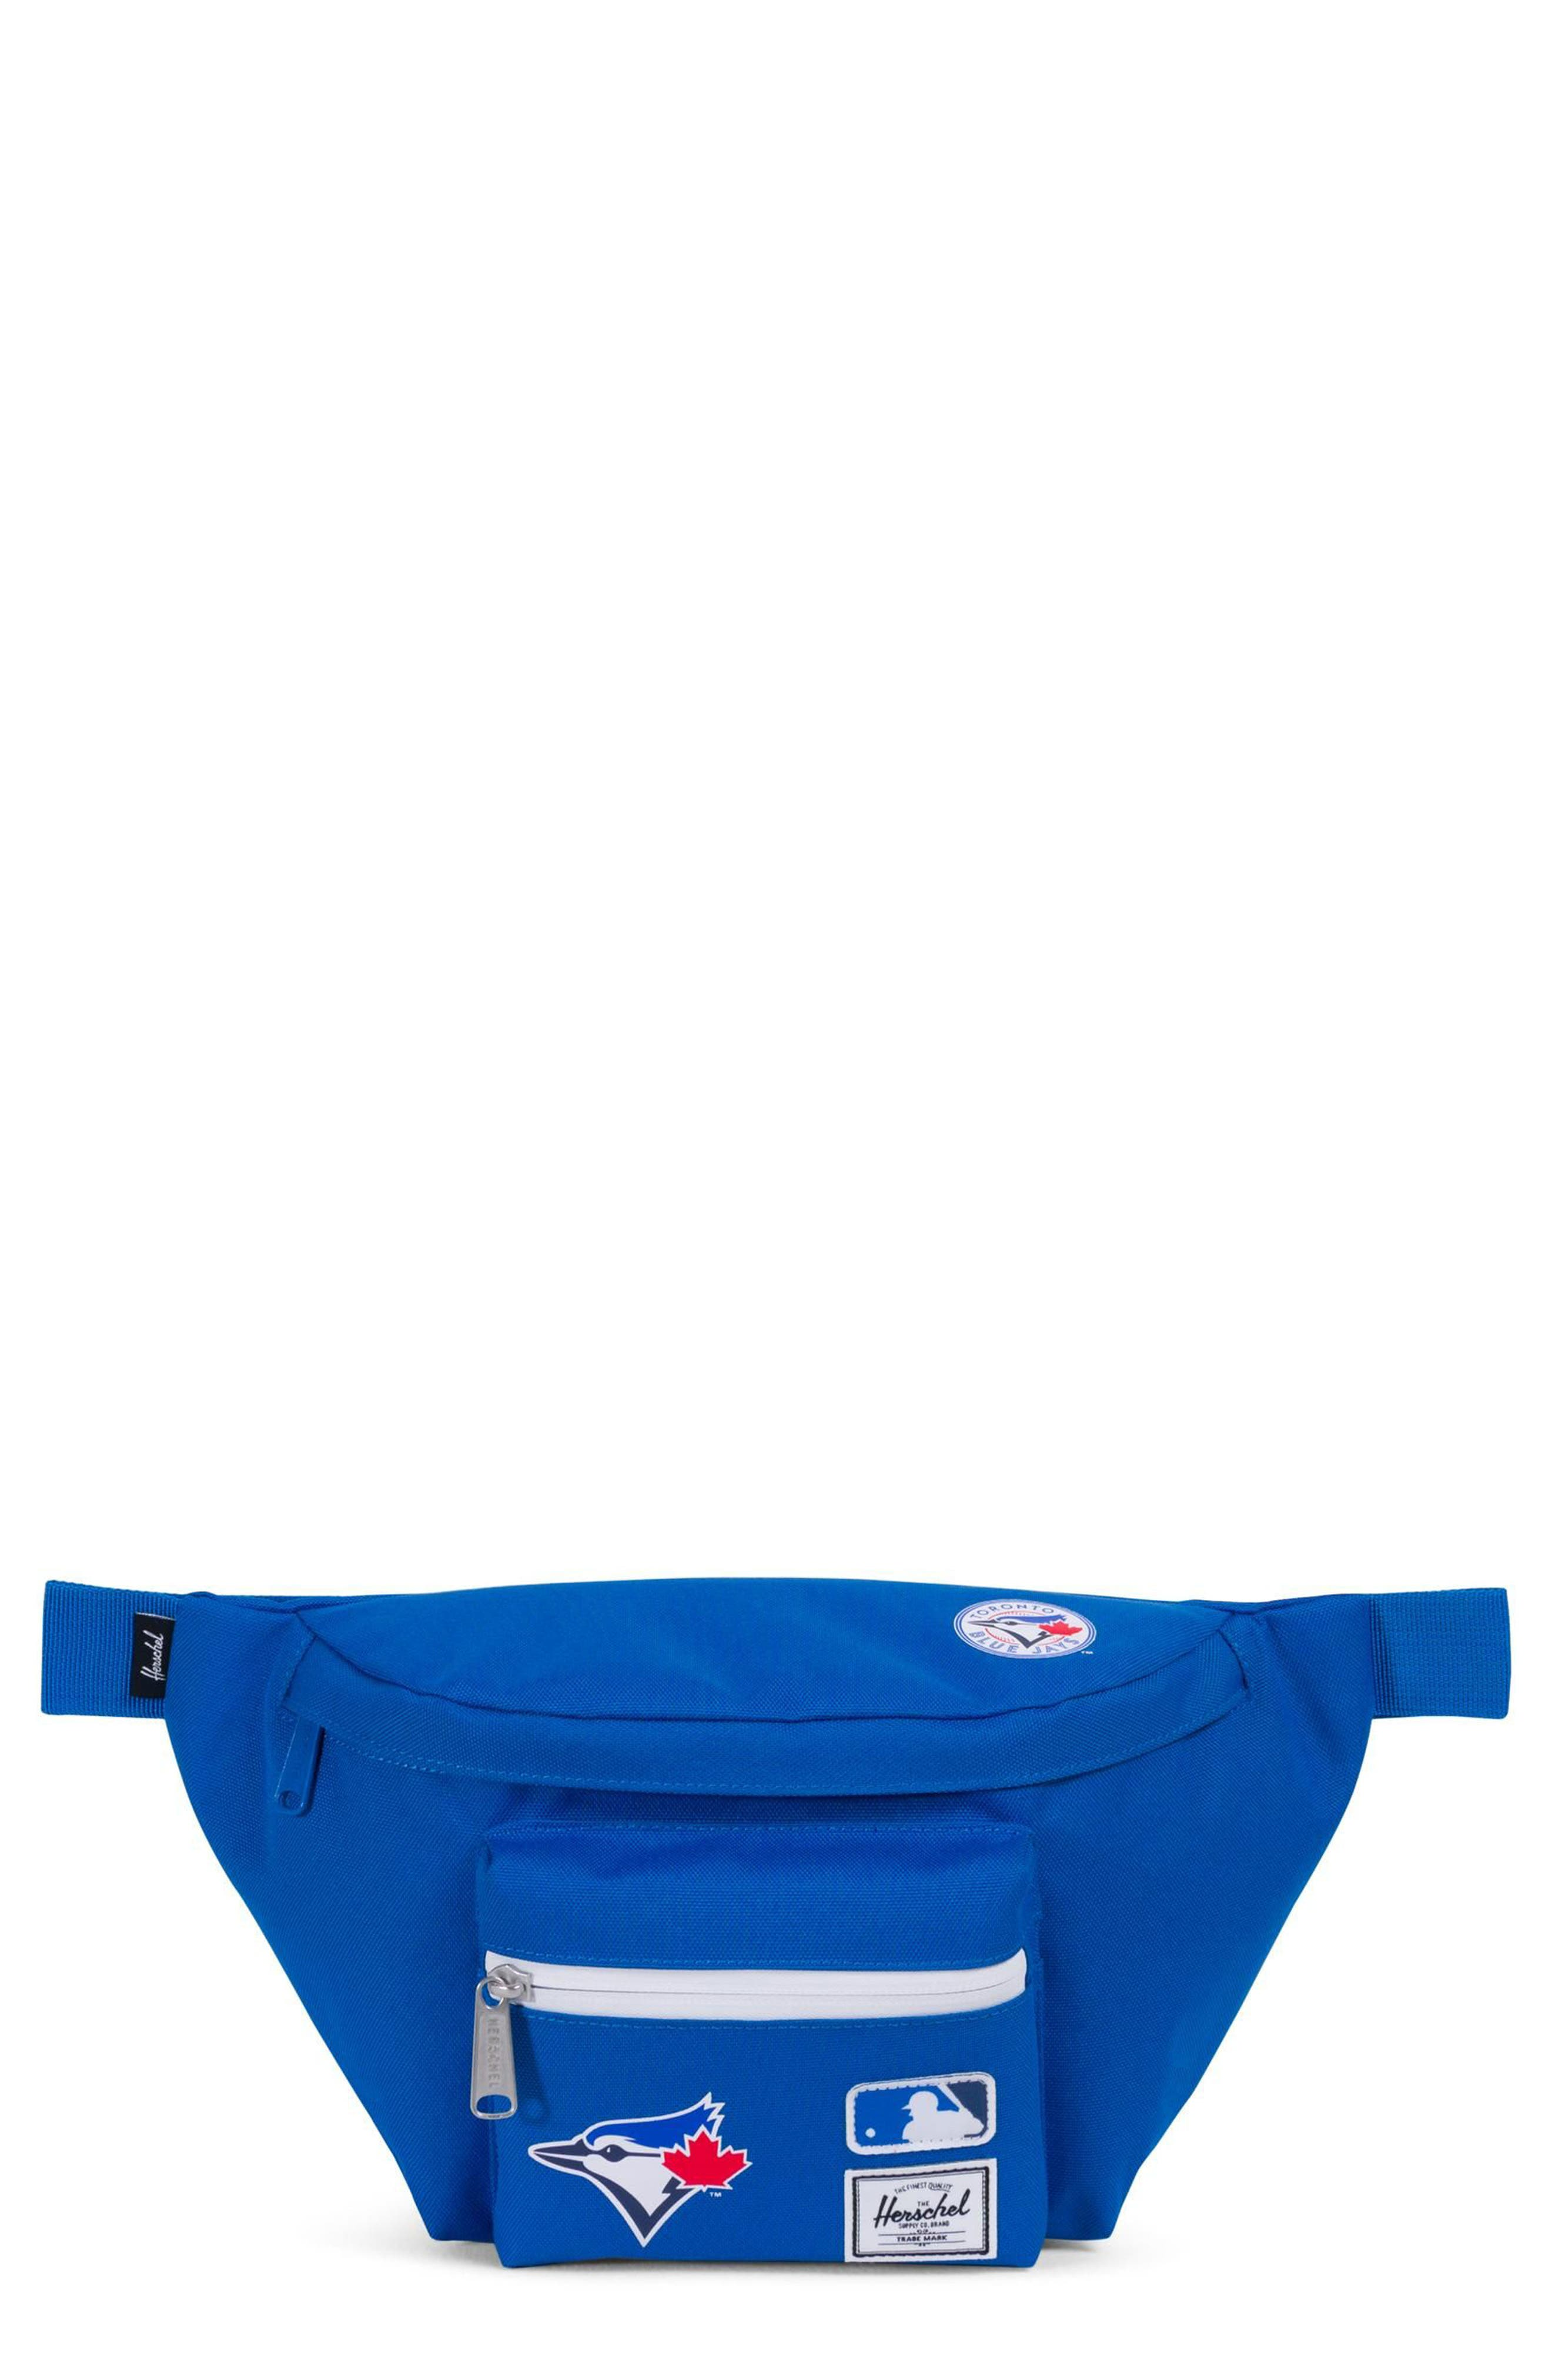 Main Image - Herschel Supply Co. MLB American League Hip Pack